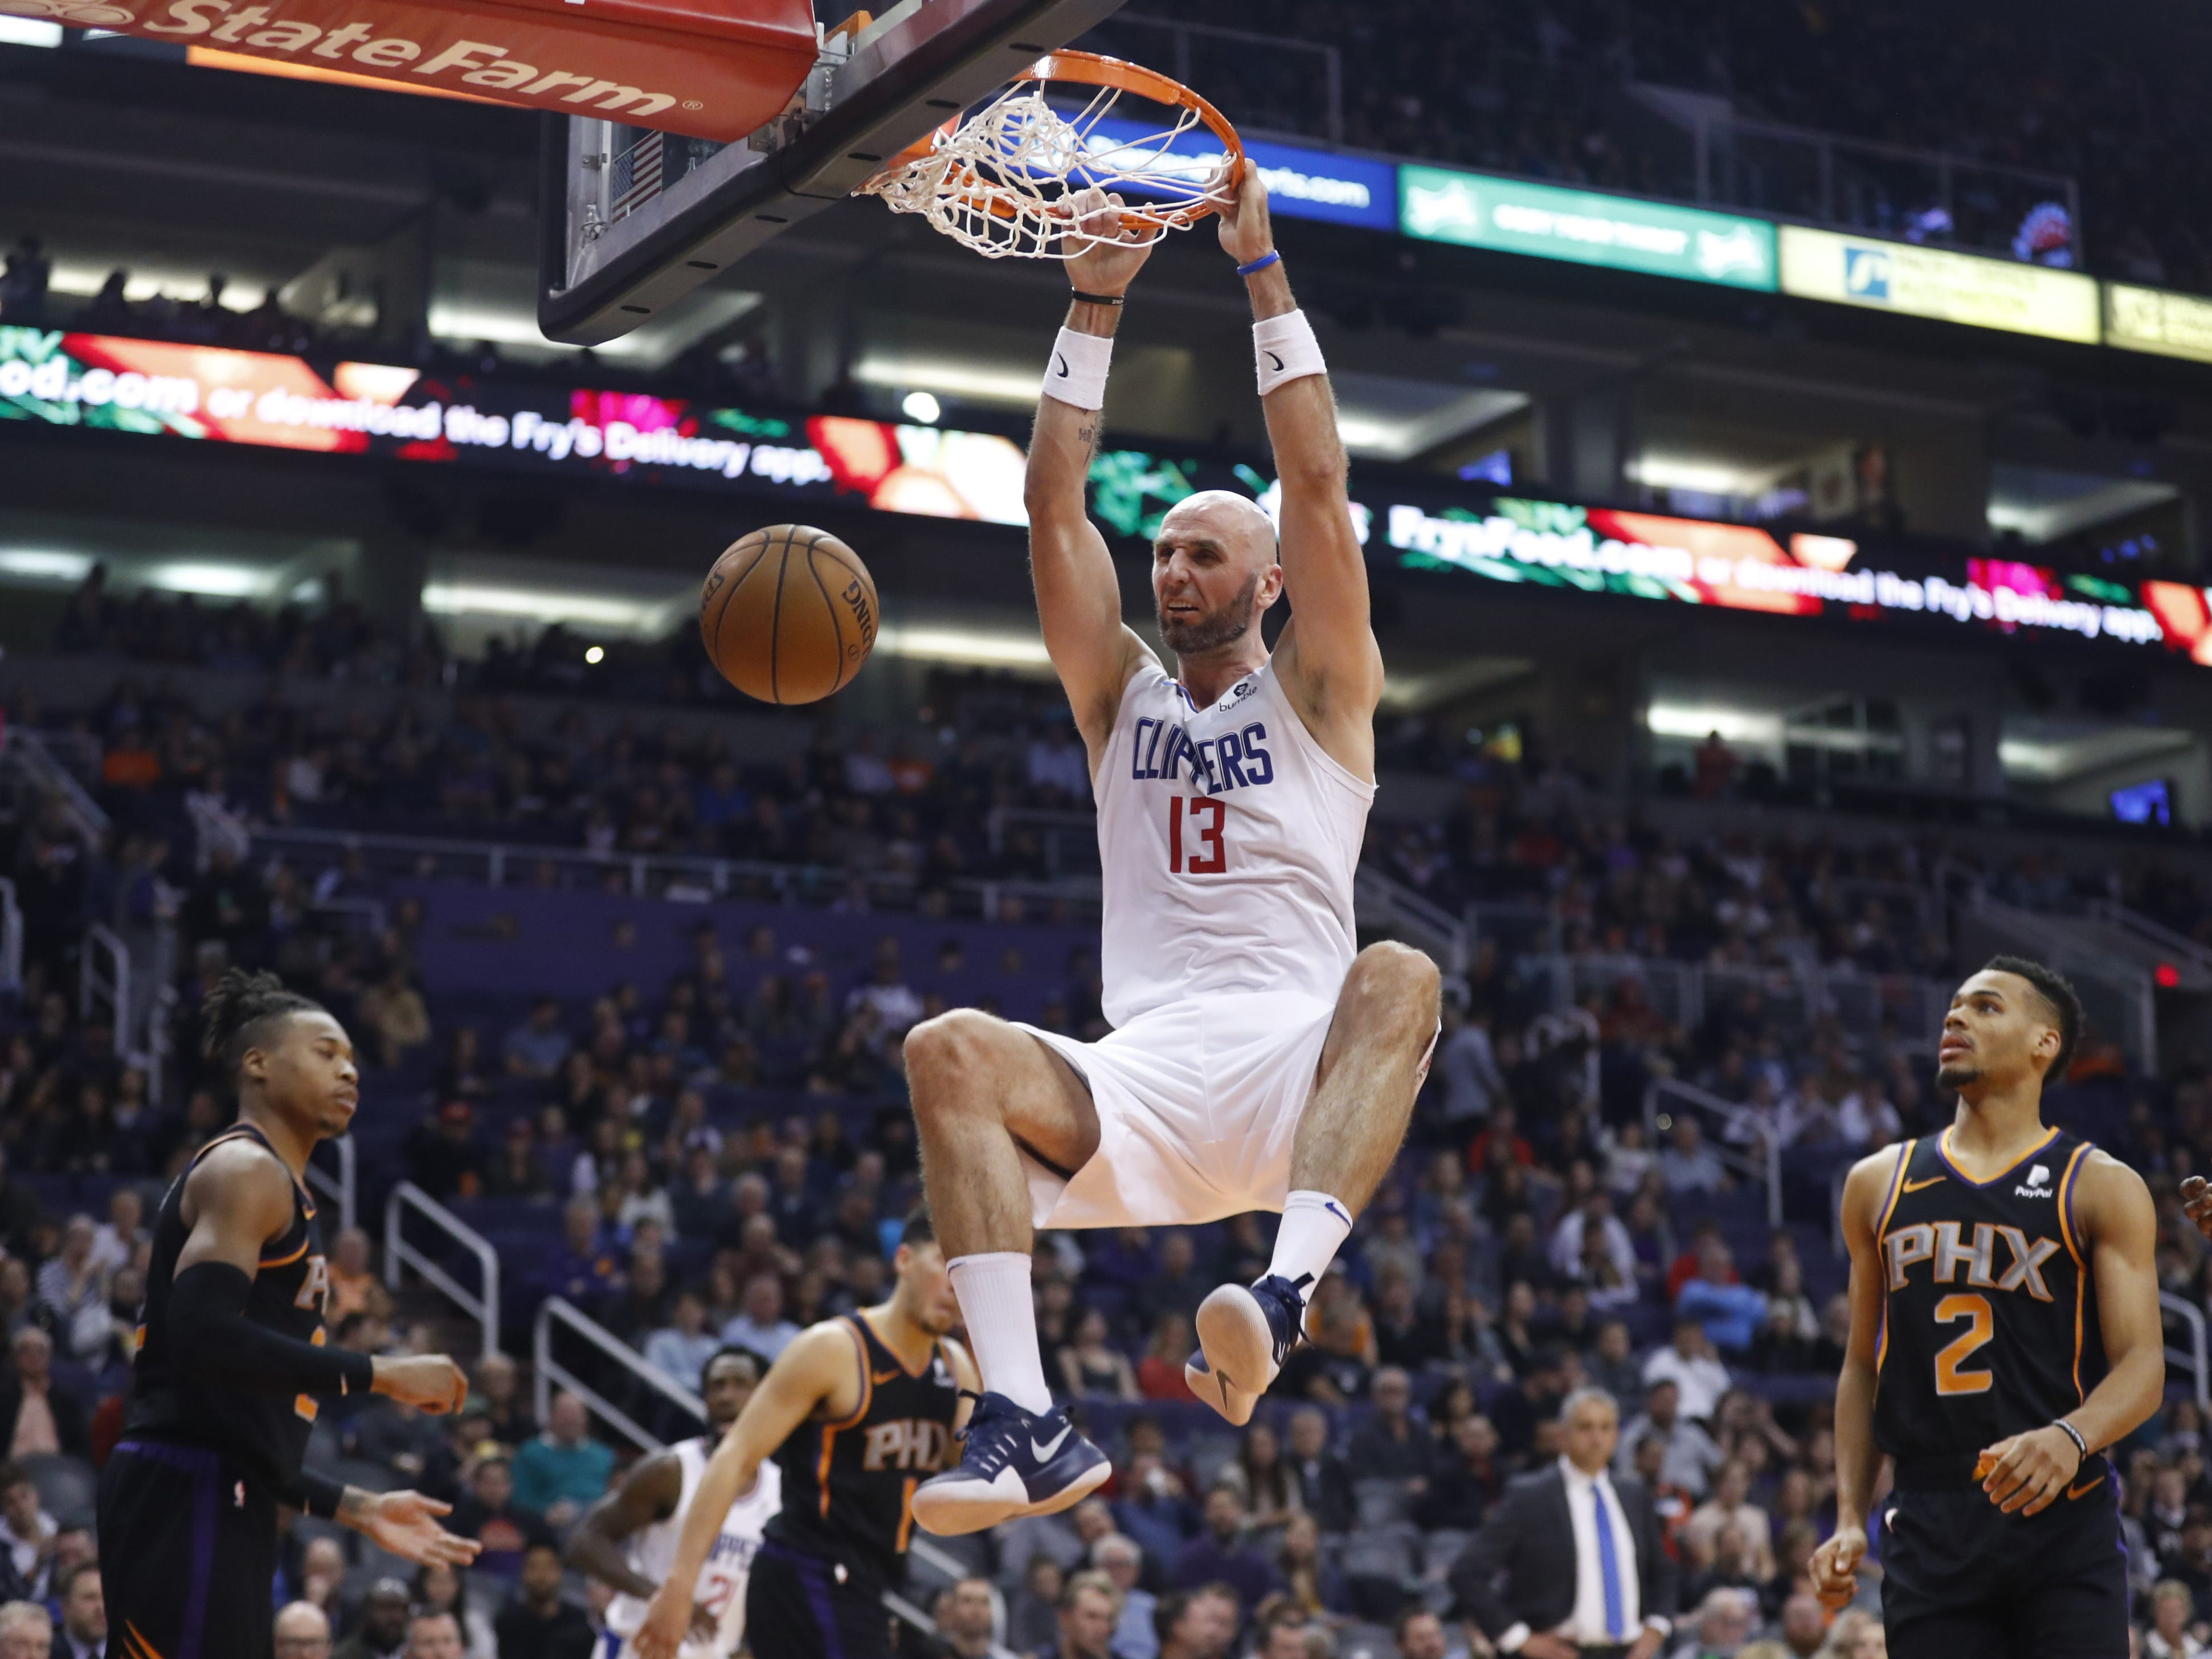 Clippers' Marcin Gortat (13) dunks against the Suns during the second half at Talking Stick Resort Arena in Phoenix, Ariz. on January 4, 2019.